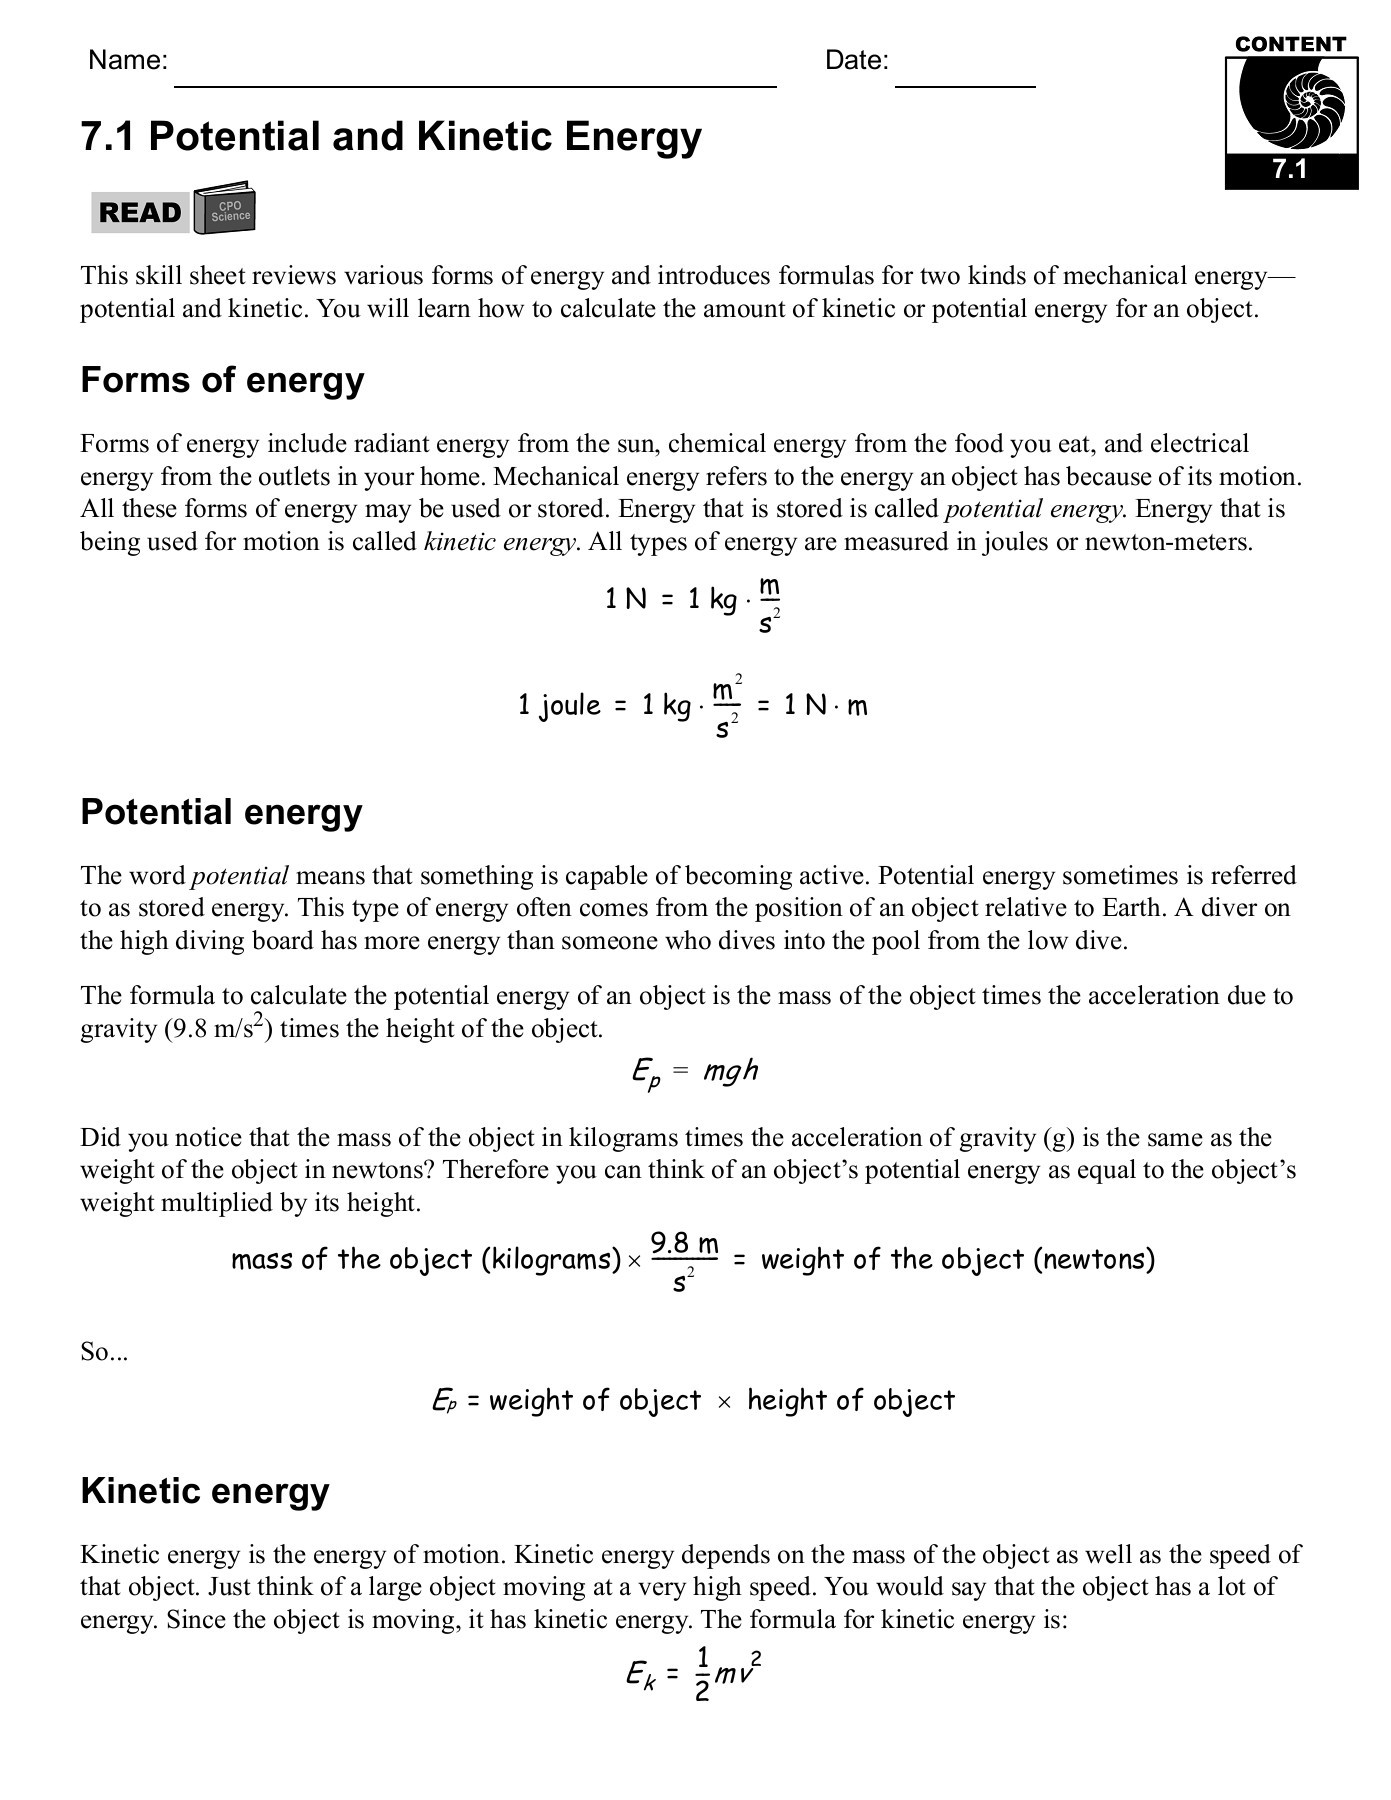 Energy Transformation Worksheet Answer Key 7 1 Potential and Kinetic Energy Cpo Science Pages 1 29